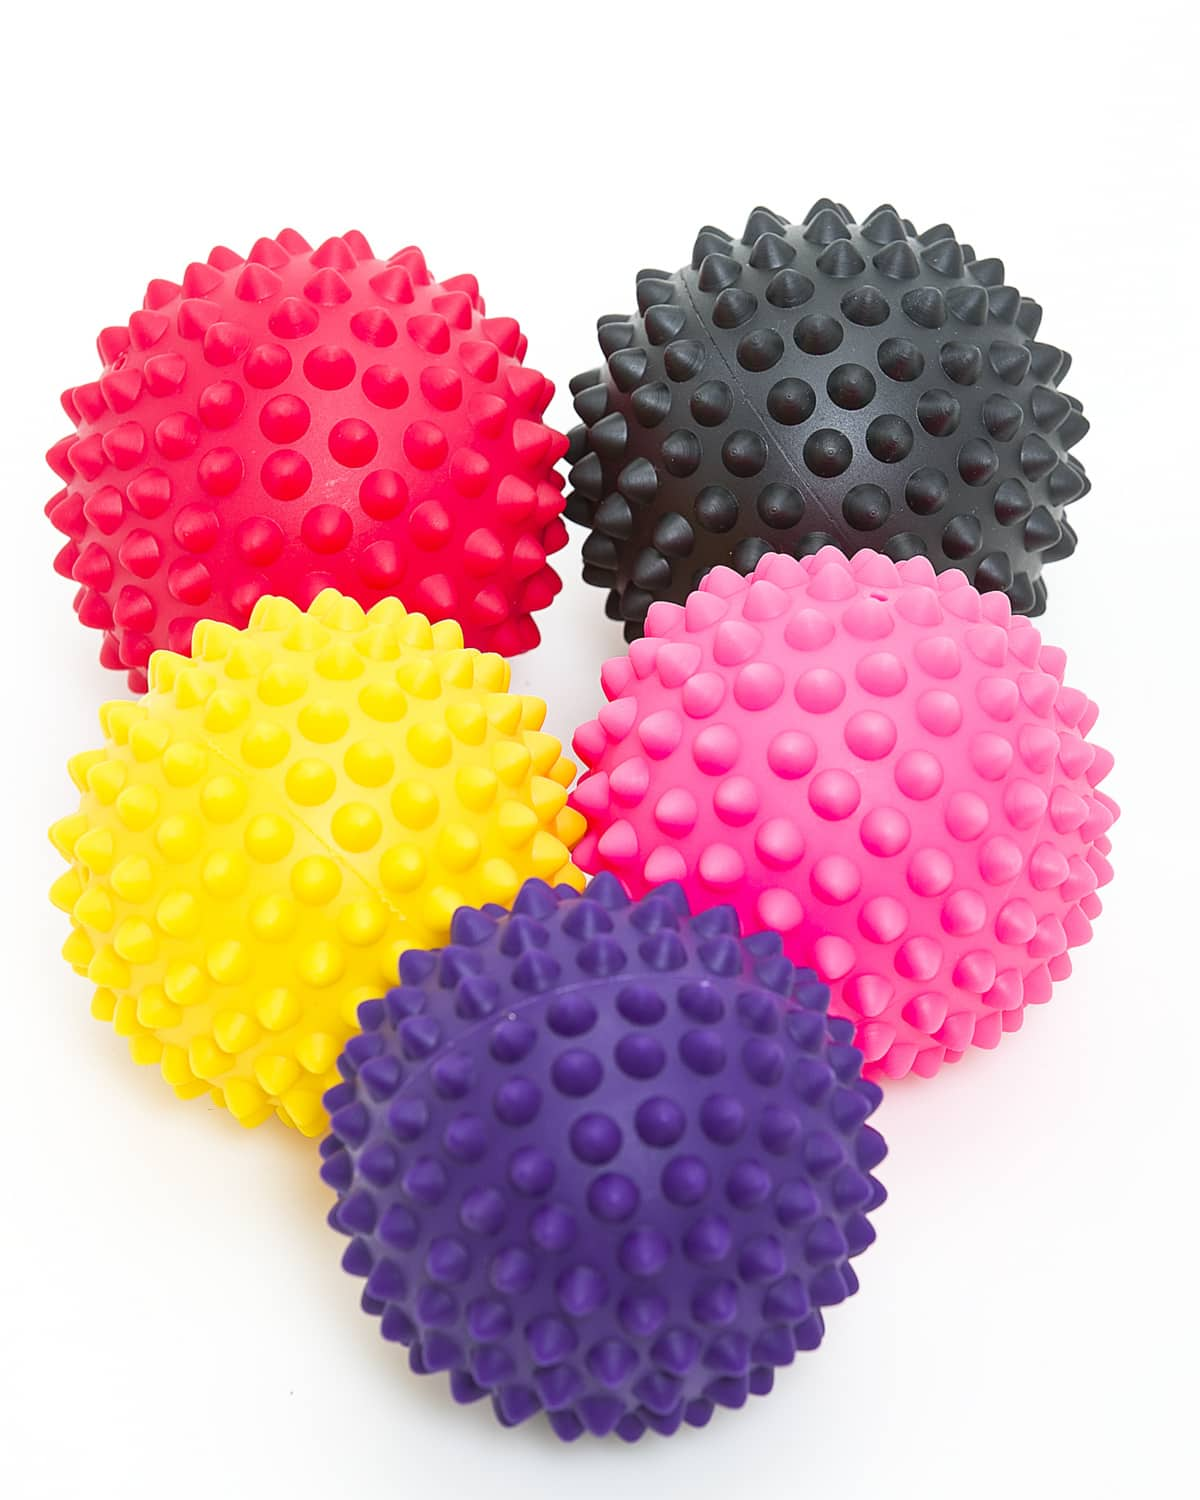 LEVITY Premium Fitness Spiky Trigger Ball a